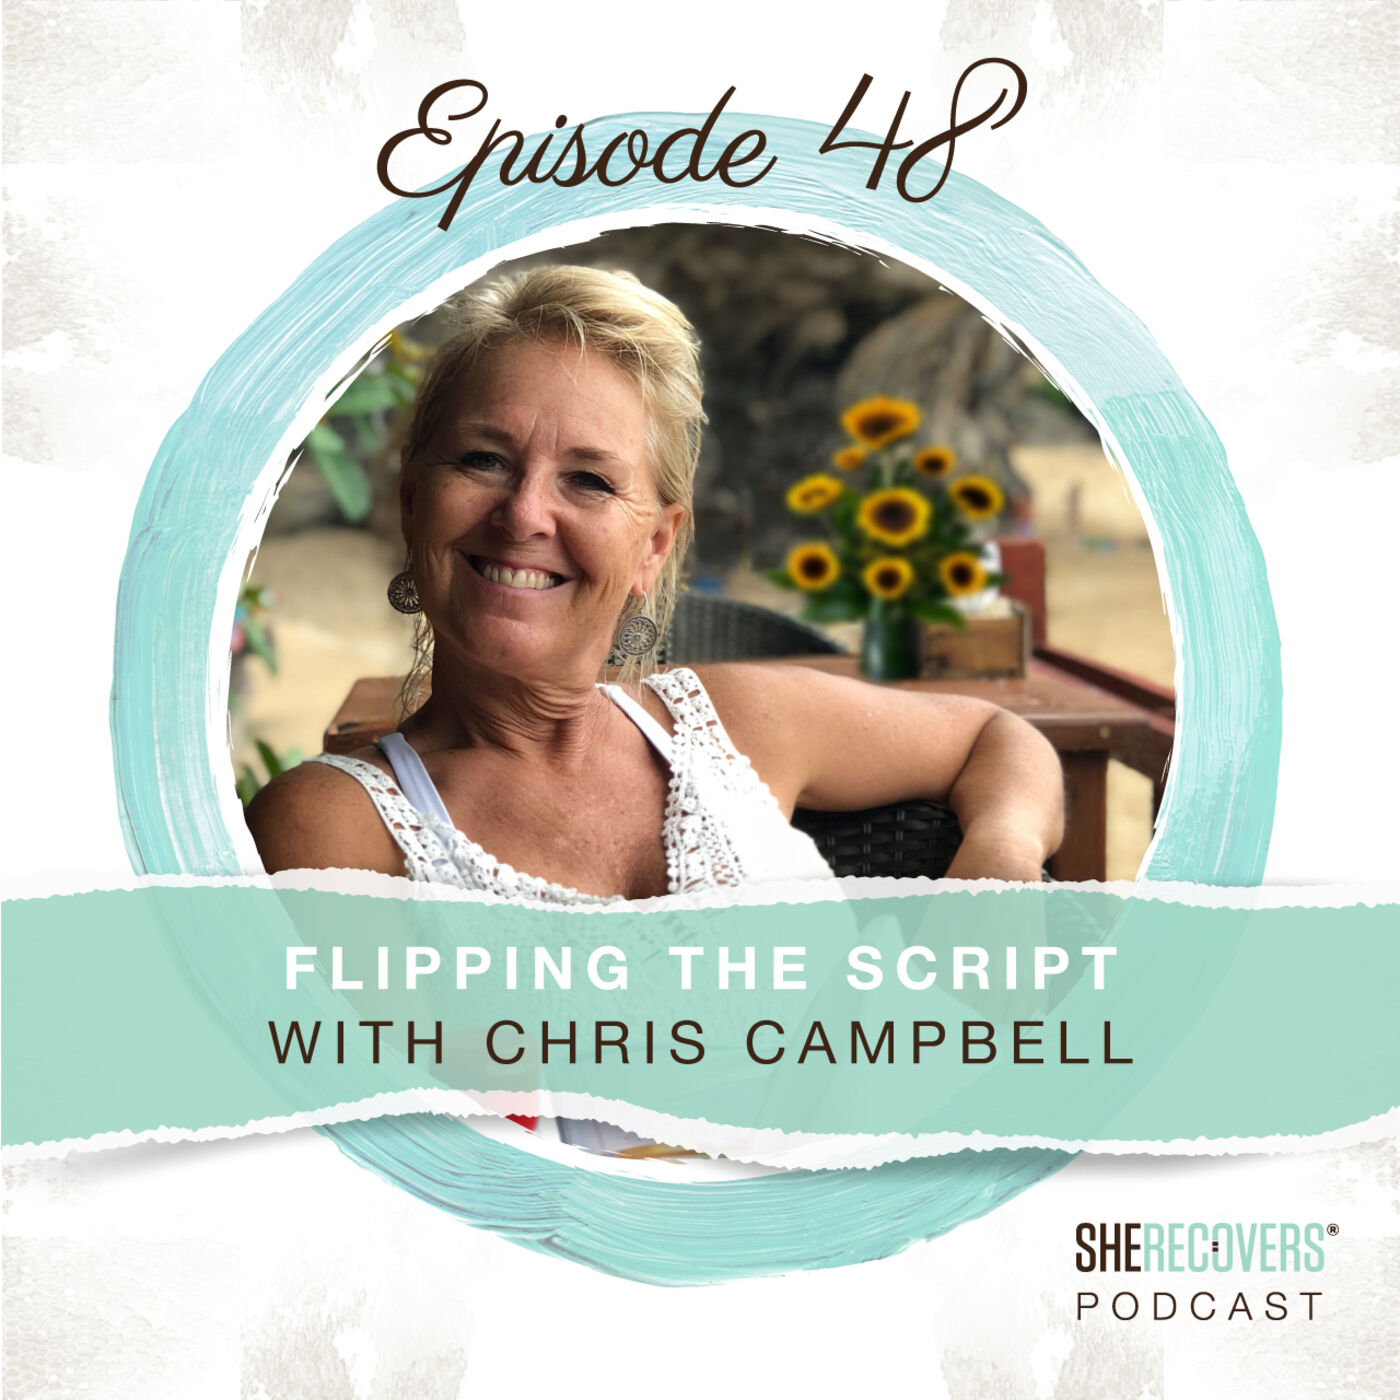 Episode 48: Flipping the Script with Chris Campbell